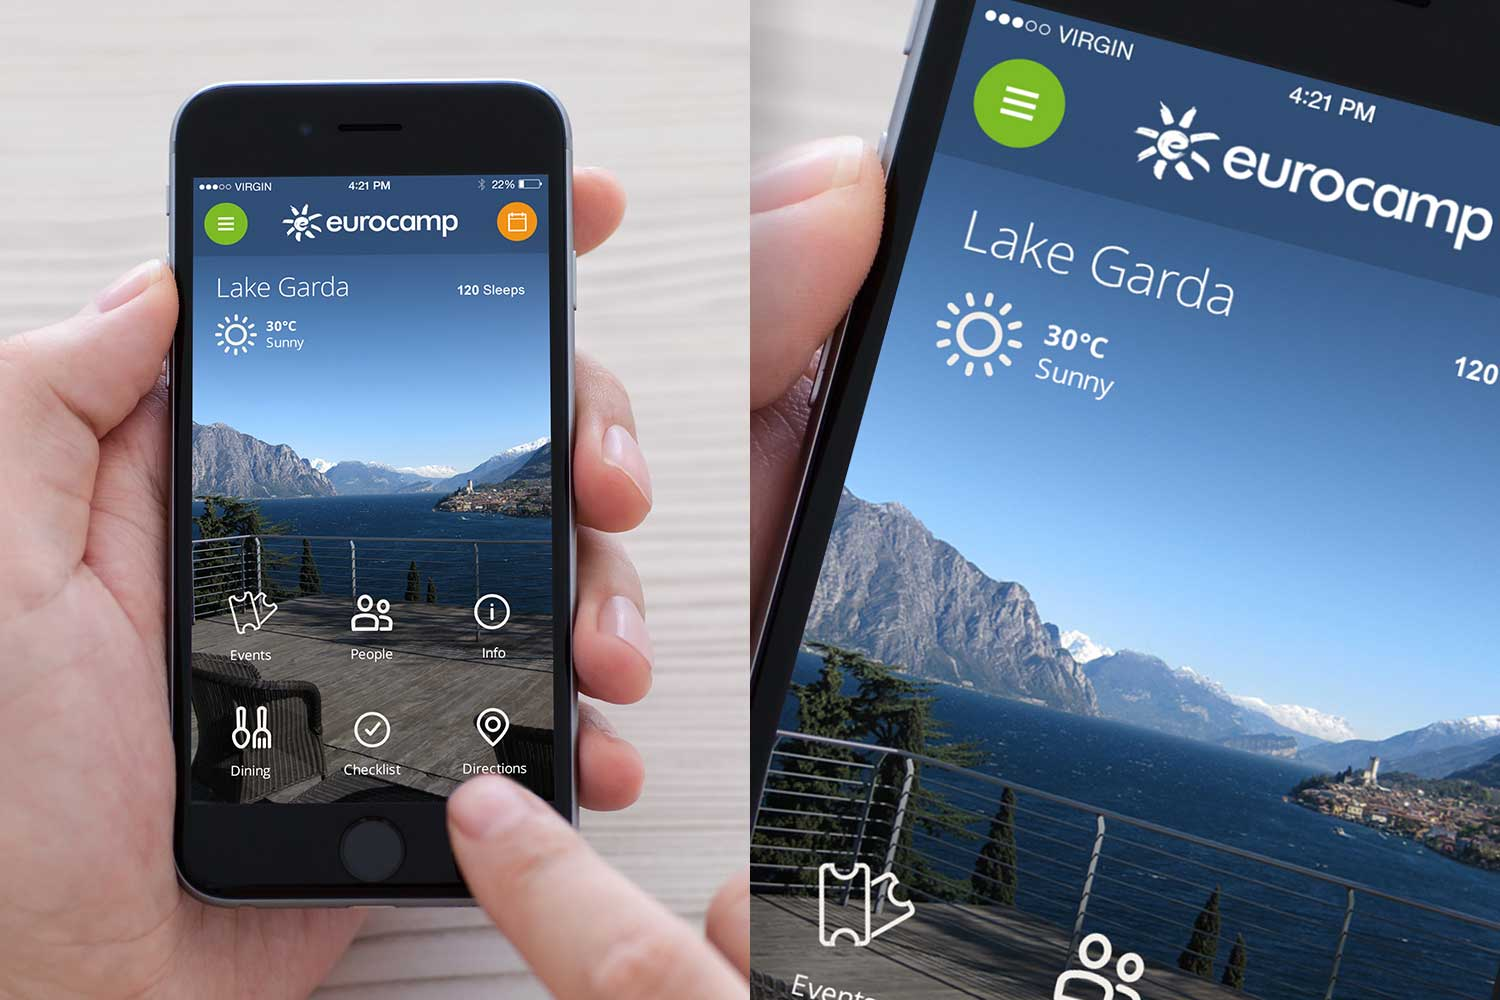 From the home screen they can organise their entire holiday, they also see photography, the weather and a countdown.